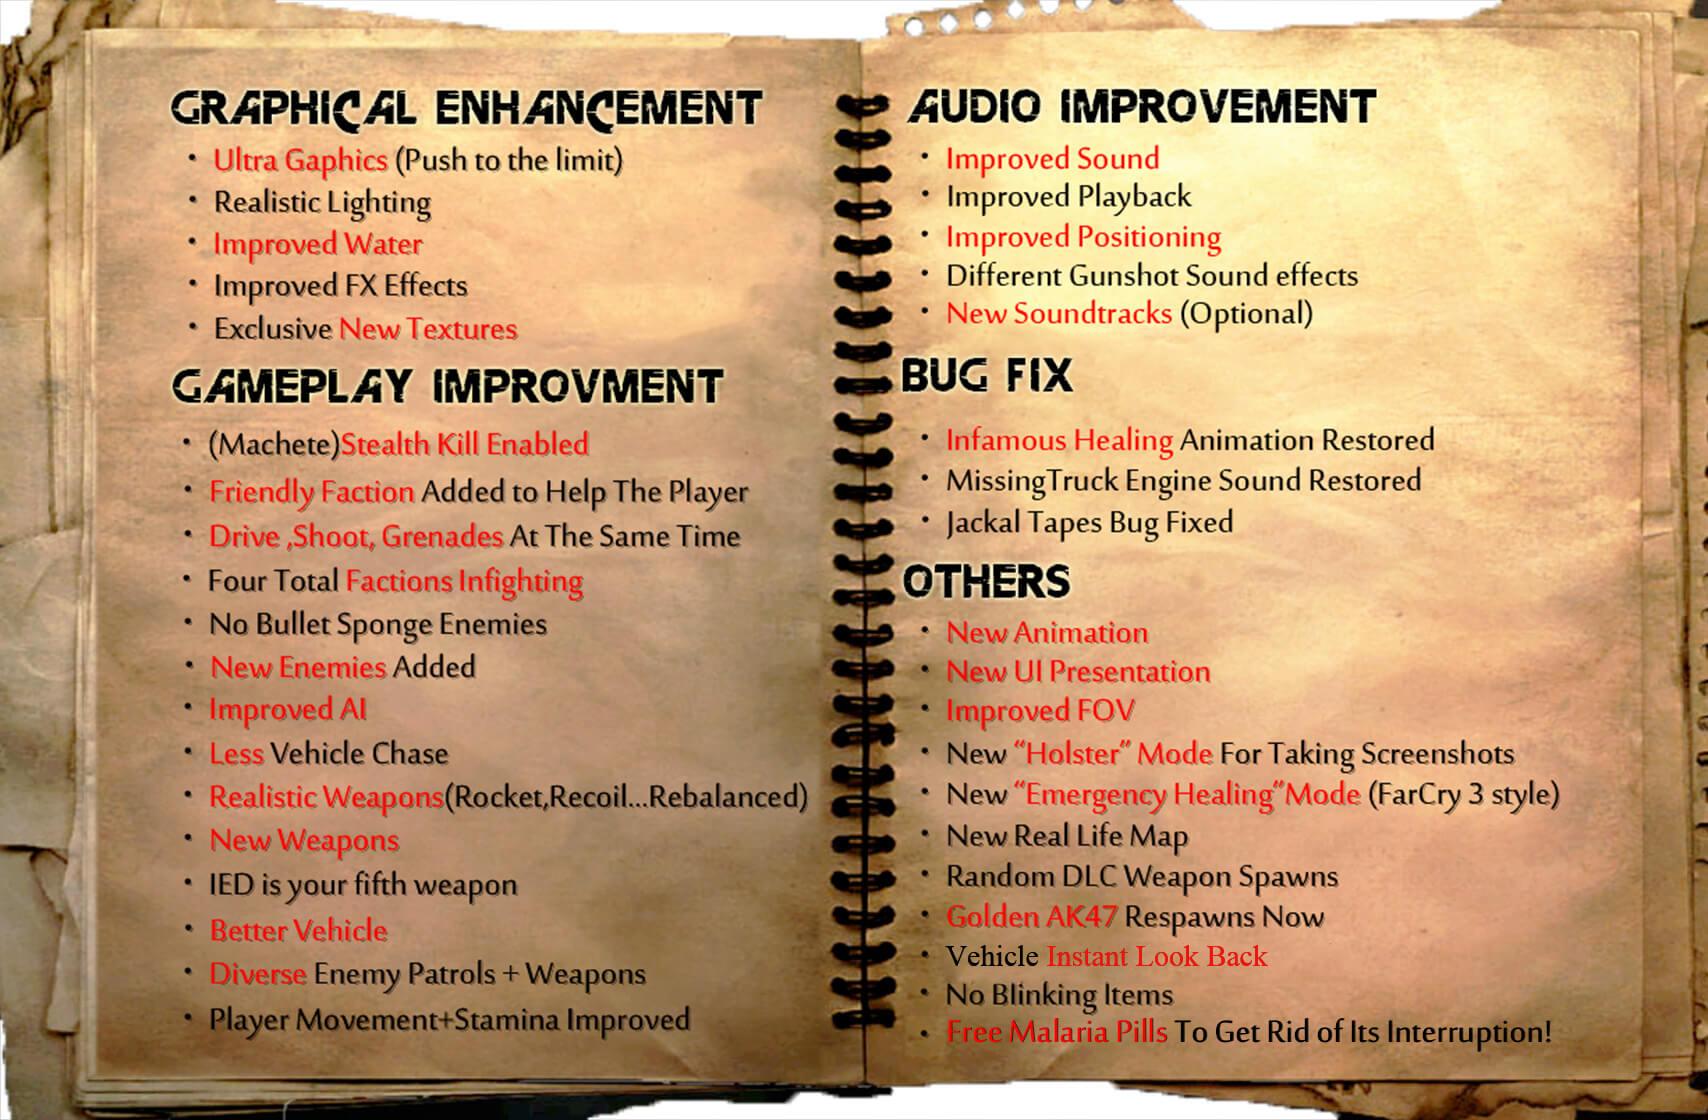 Far Cry 2 remaster mode improvements and changes